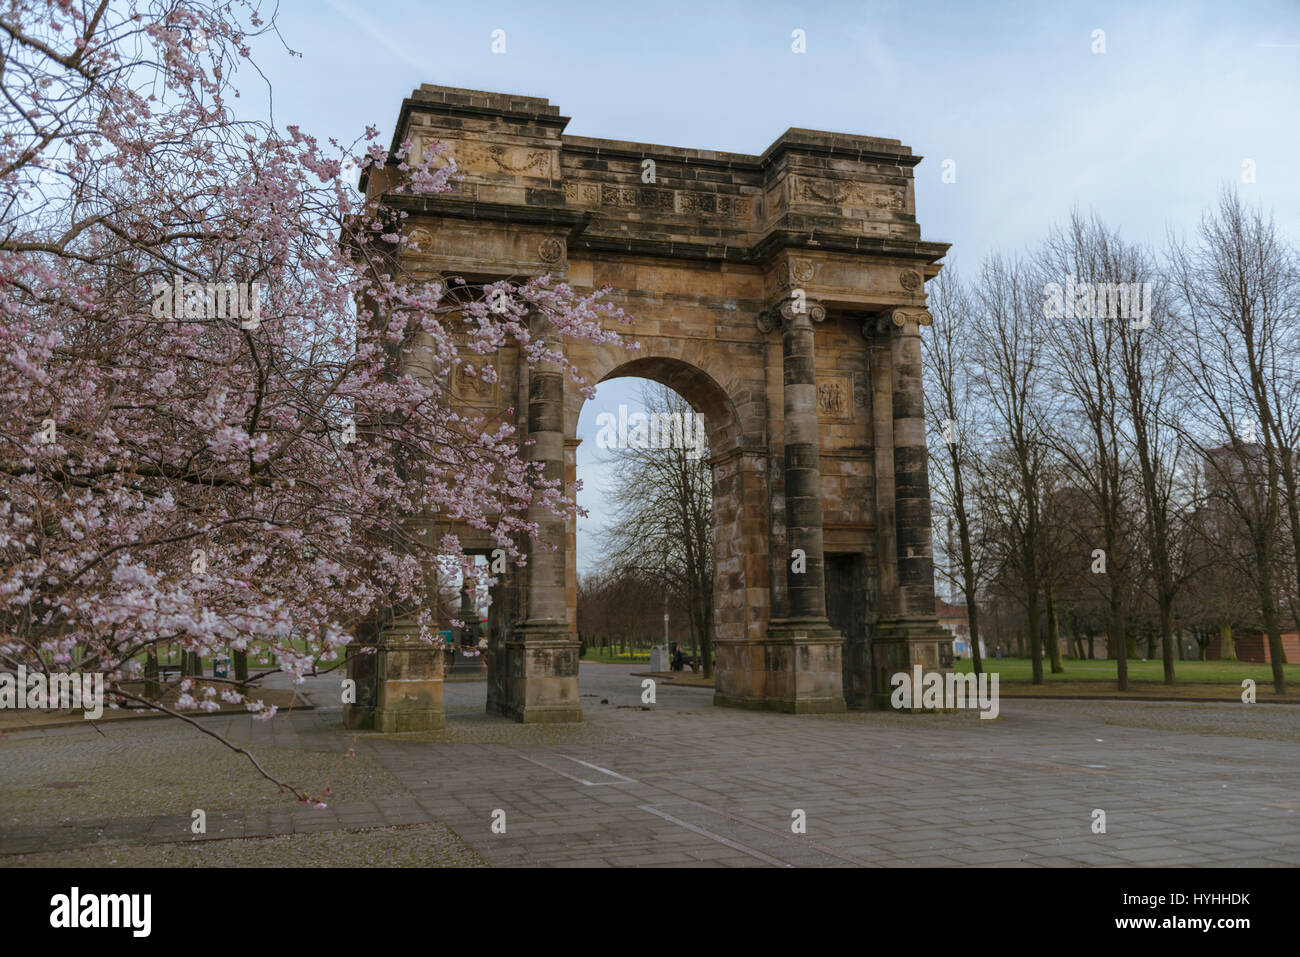 McLellan Arch, Glasgow Green, Glasgow, Scotland, UK - Stock Image